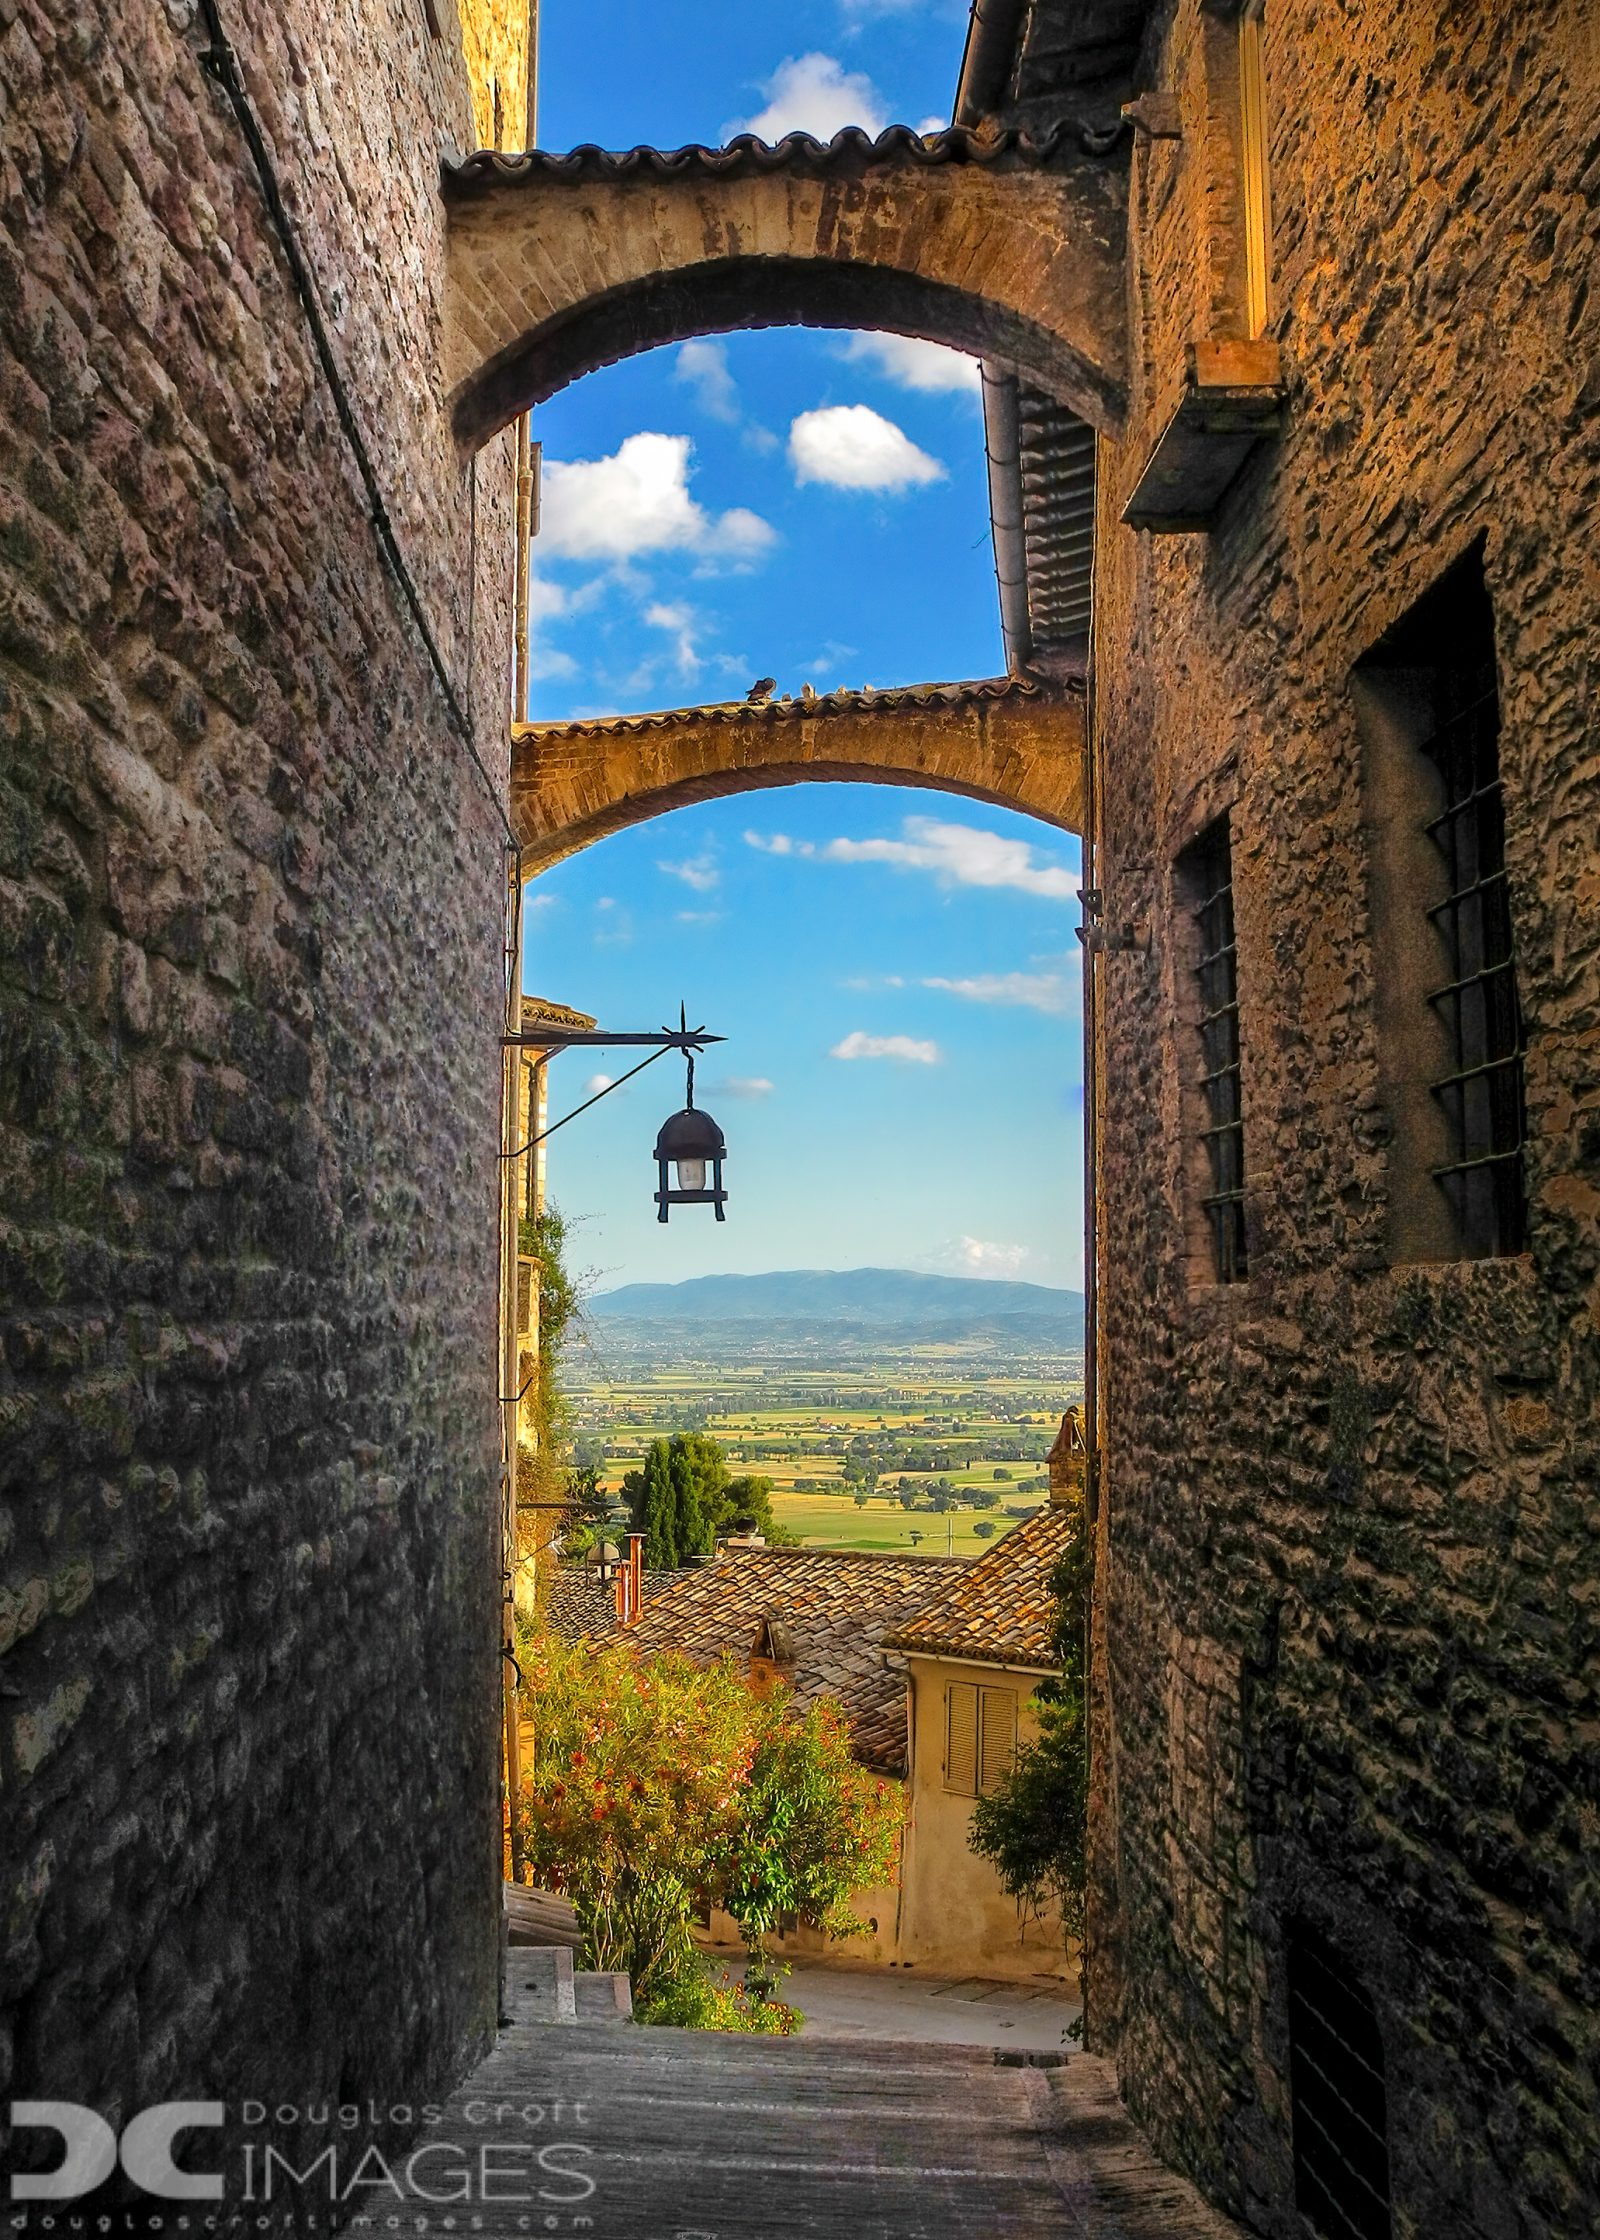 The Umbrian Countryside